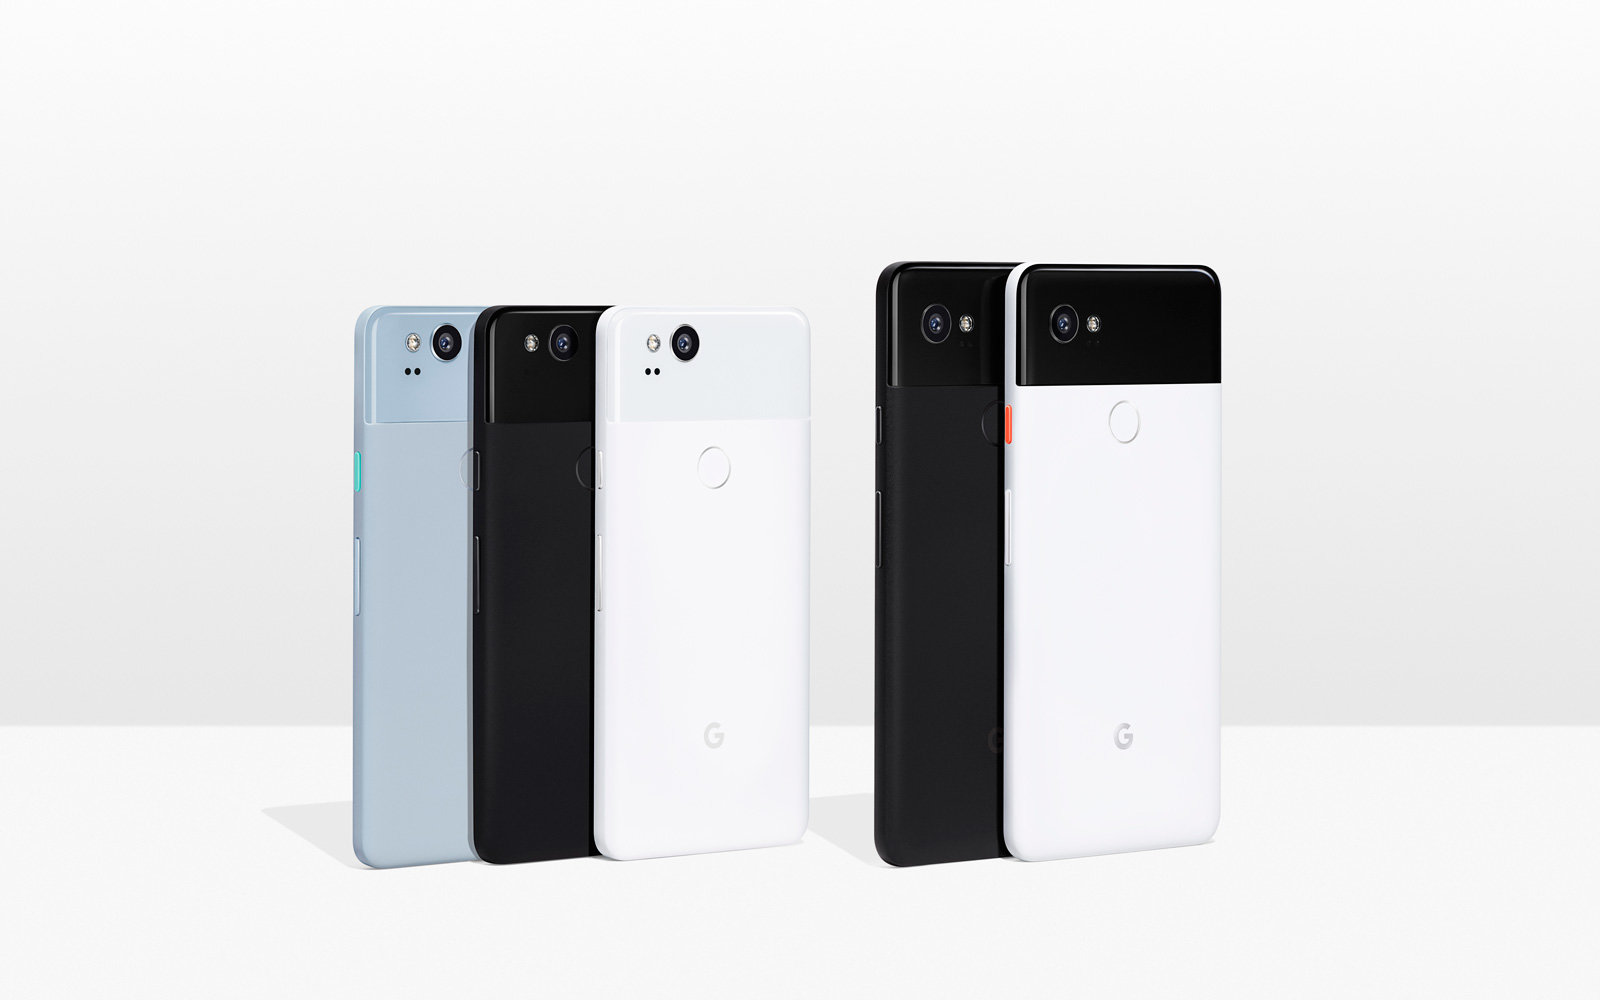 The Google Pixel 2 and Google Pixel 2 XL.